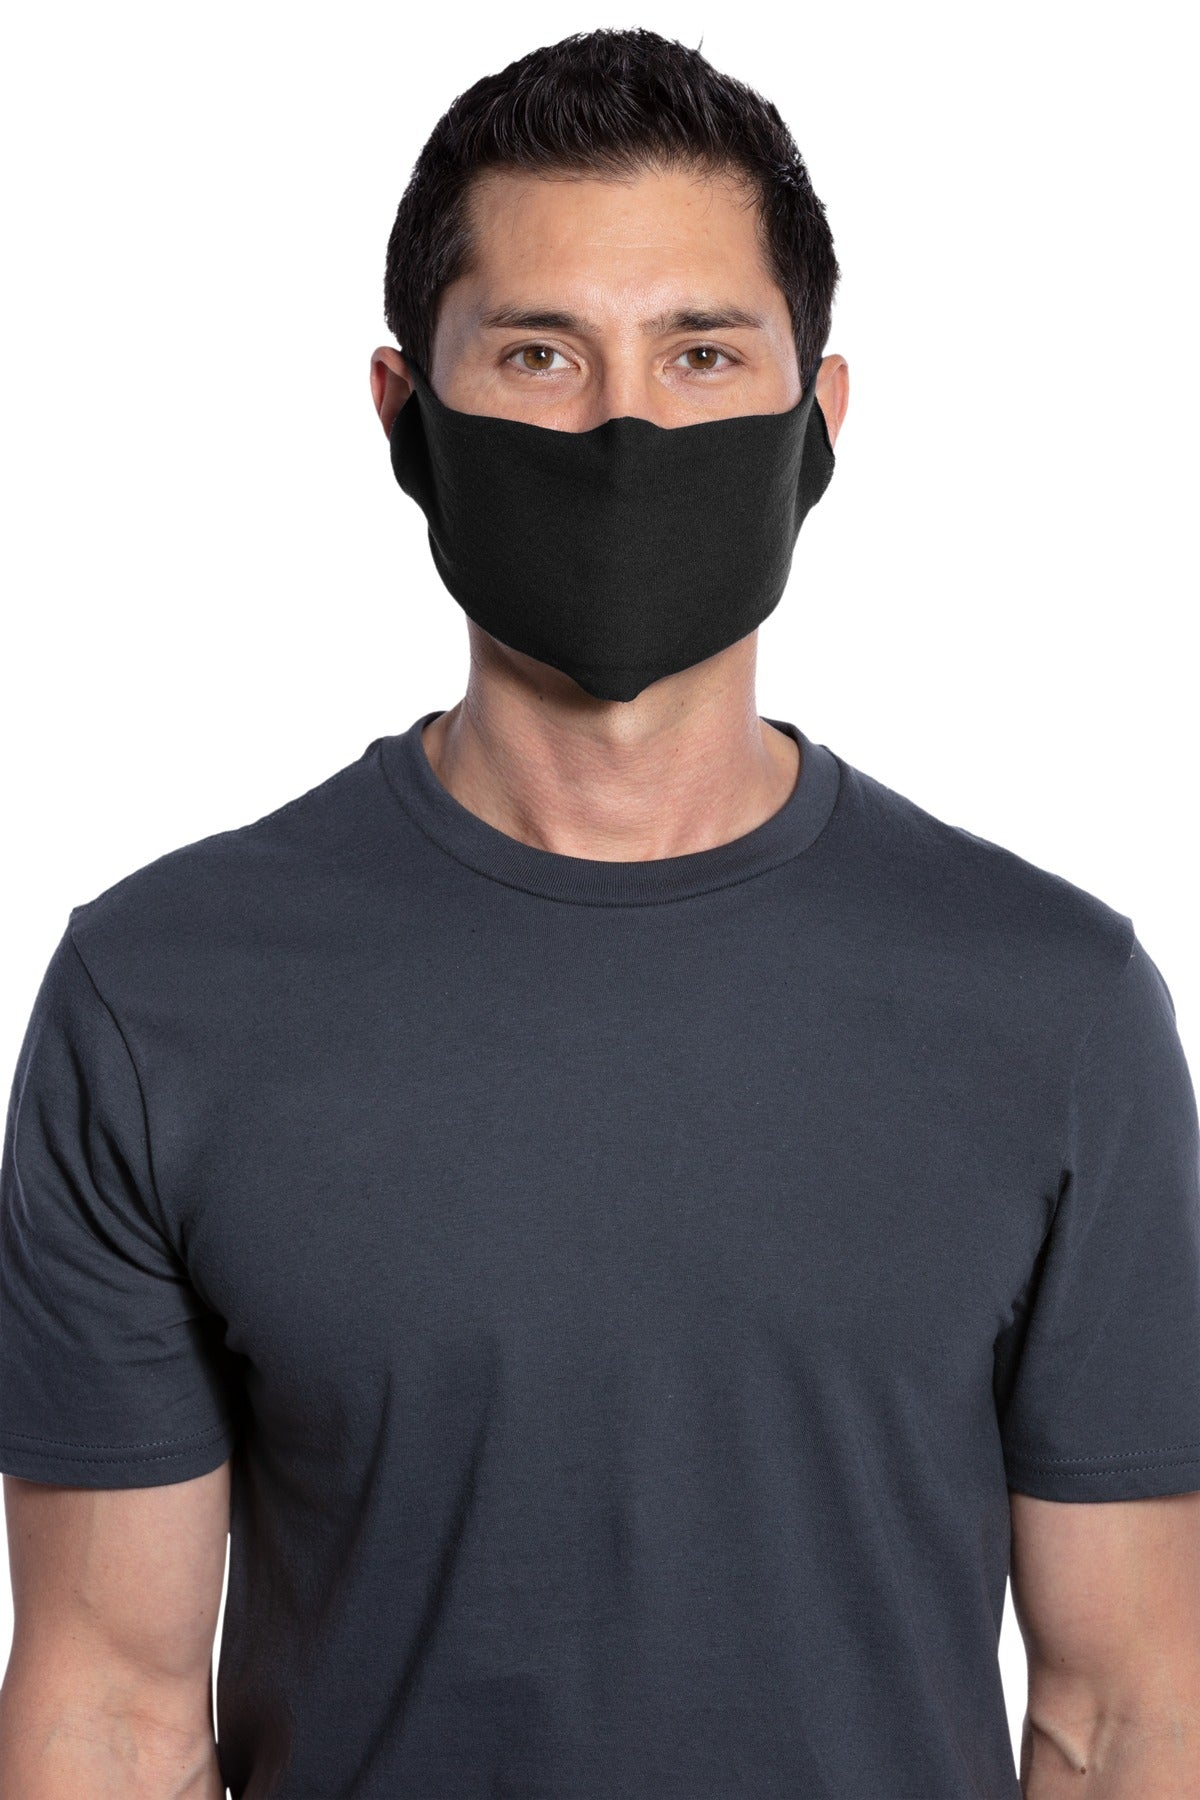 50/50 Cotton/Poly Face Covering 240 pack (10 packs = 1 Case) FACECVR240